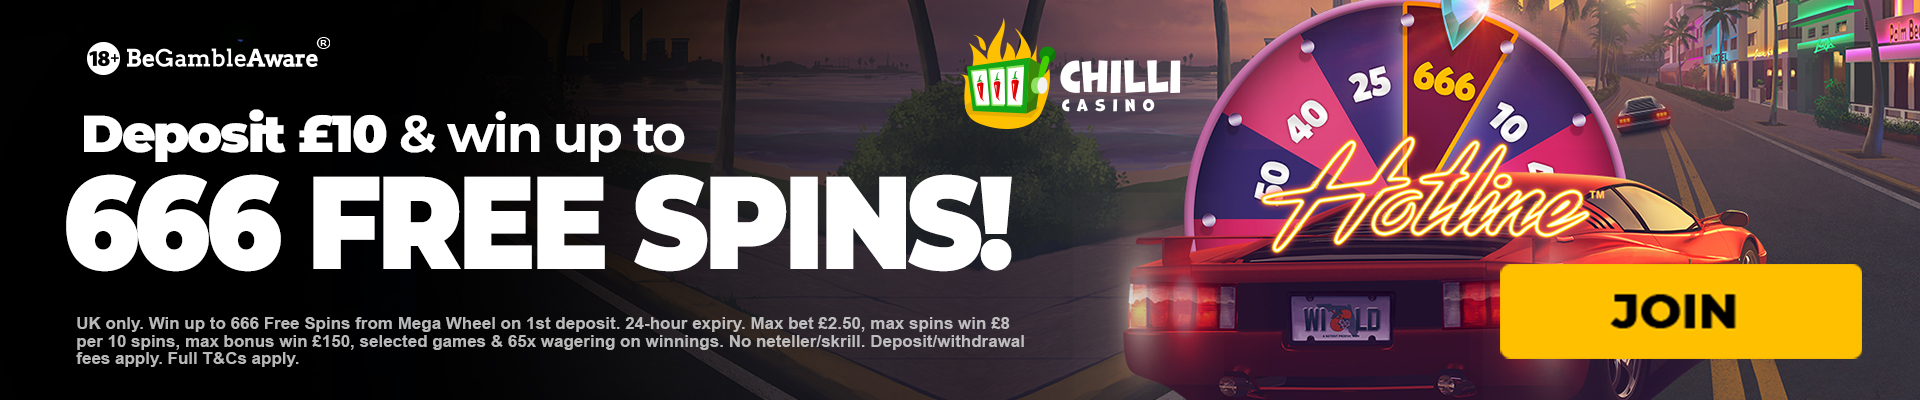 Chilli casino bonus